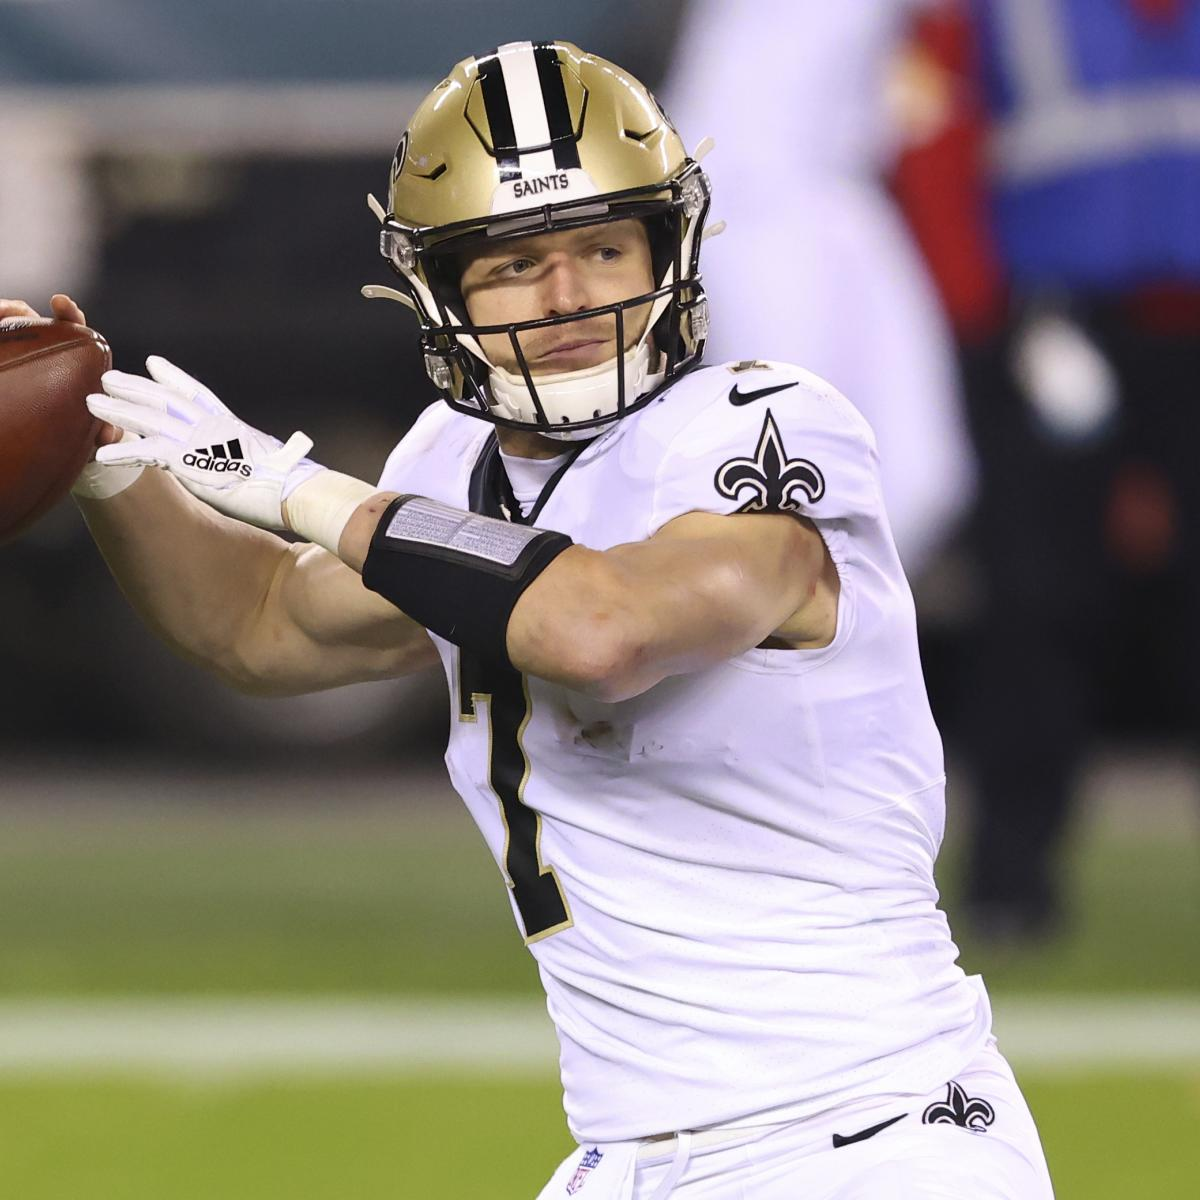 Saints' Taysom Hill Carted Off Injured vs. WFT, Diagnosed with Concussion